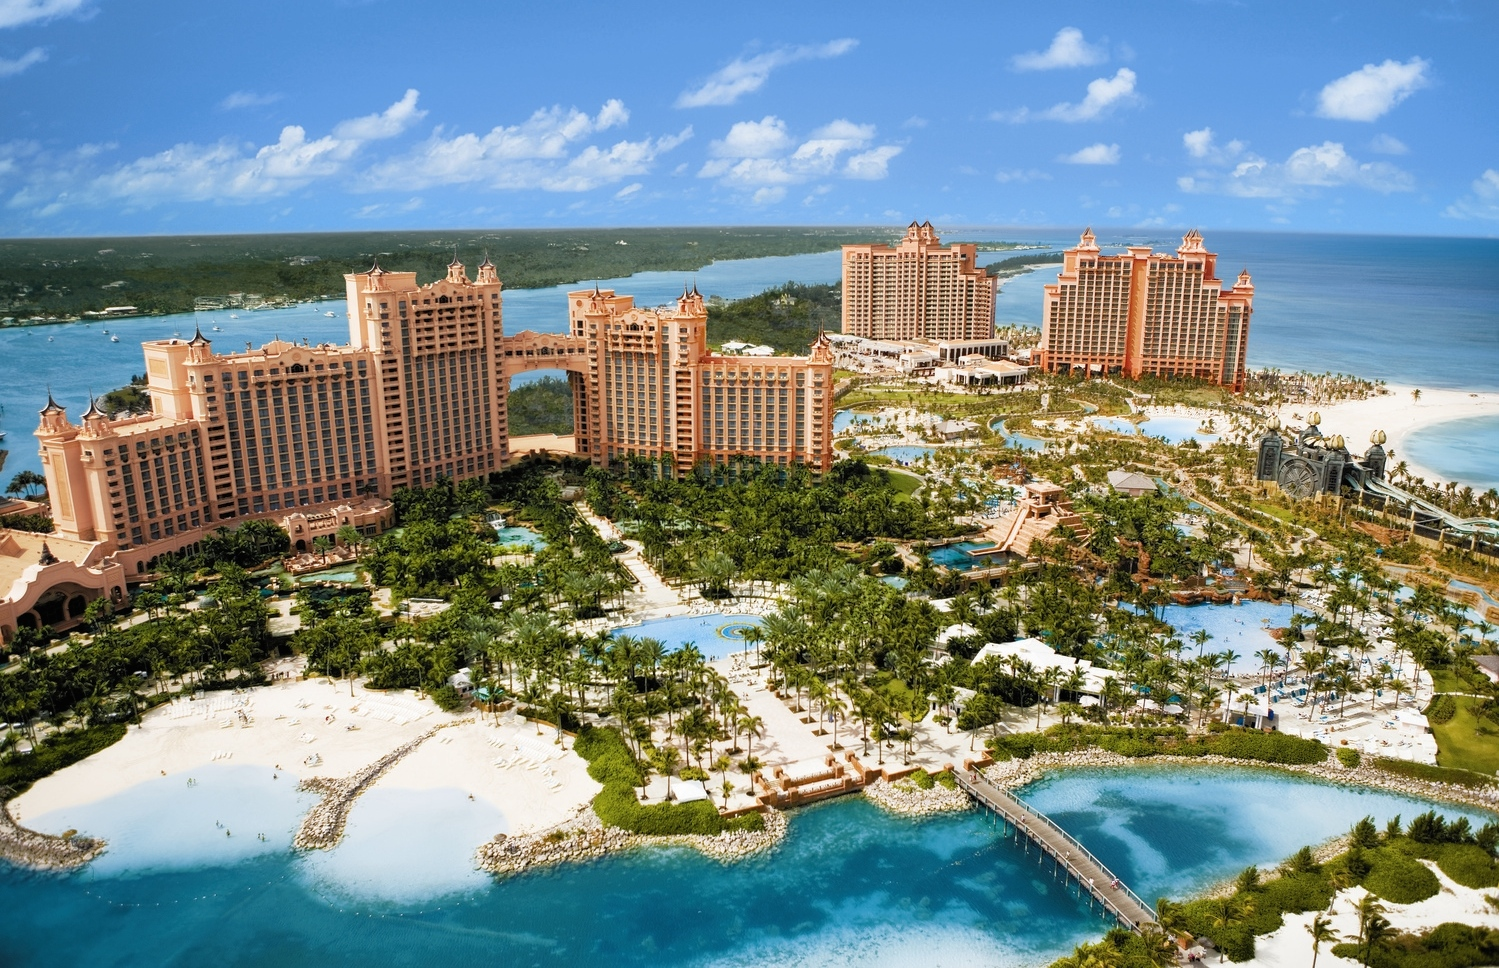 The Reef, Atlantis Bahamas